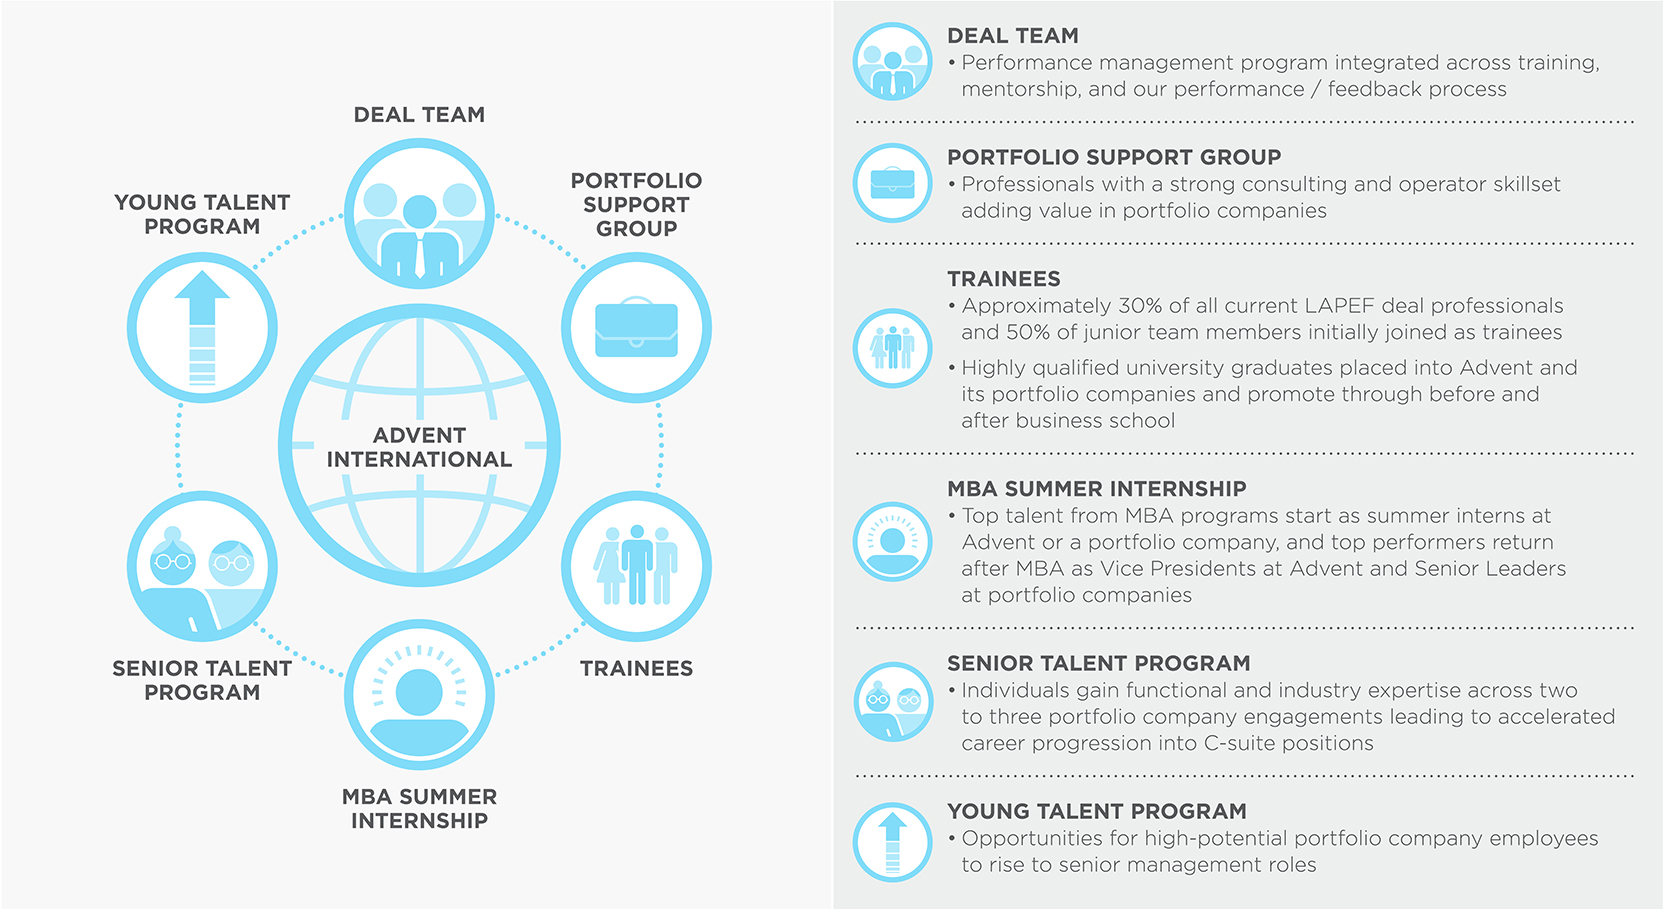 Advent International: Deal Team, Trainees, Trainees, MBA Summer Internship, Senior Talent Program, Portfolio Support, Young Talent Program